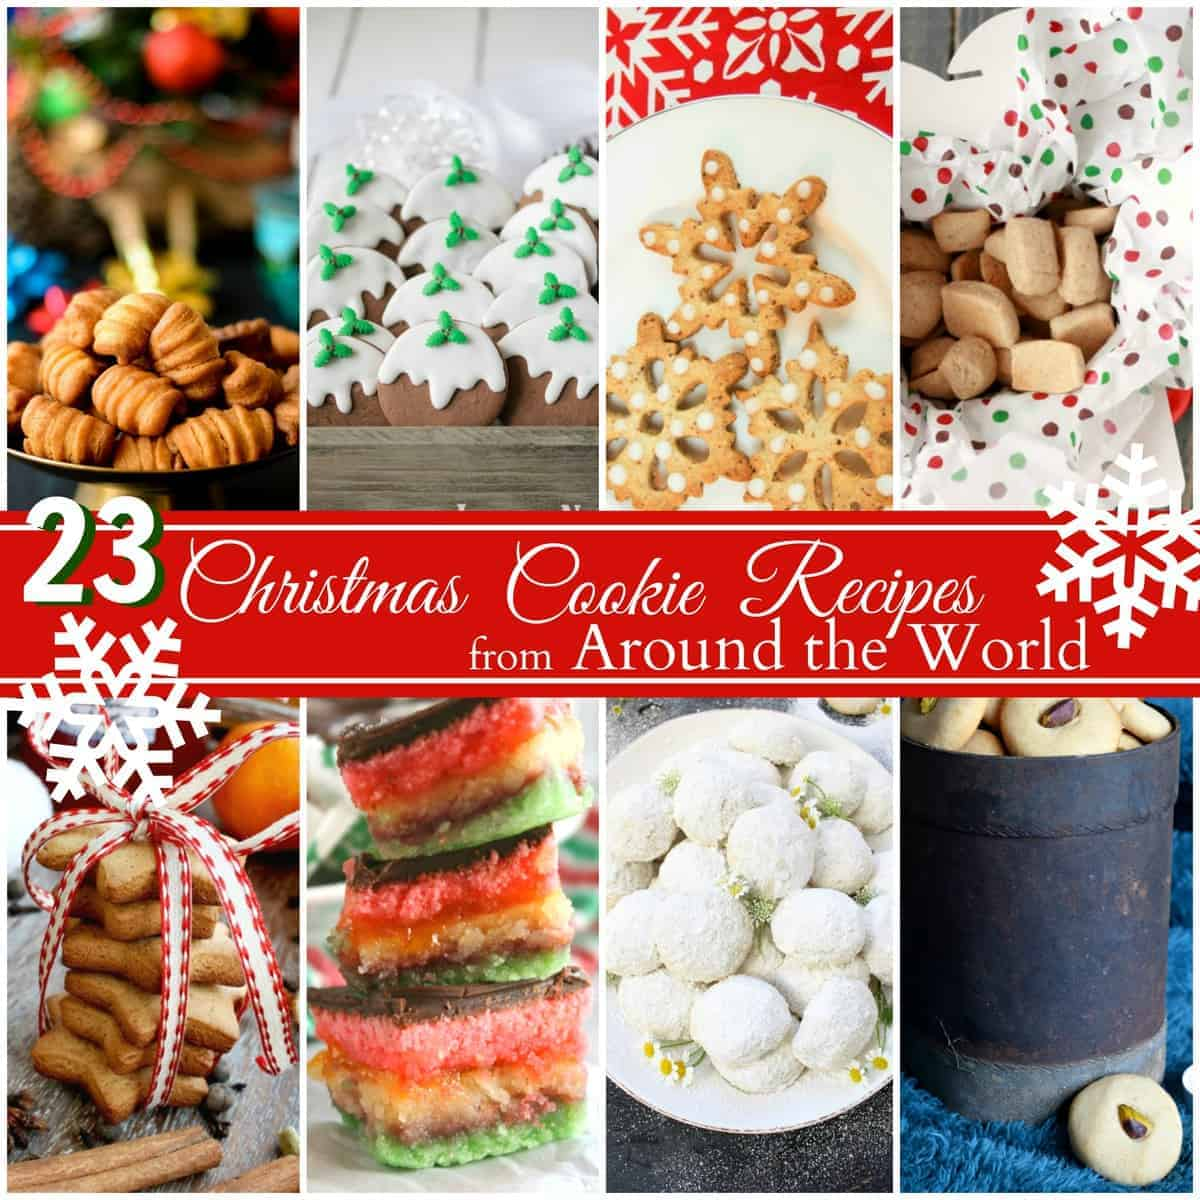 23 Christmas Cookie Recipes from Around the World. A collection of international holiday cookie recipes!